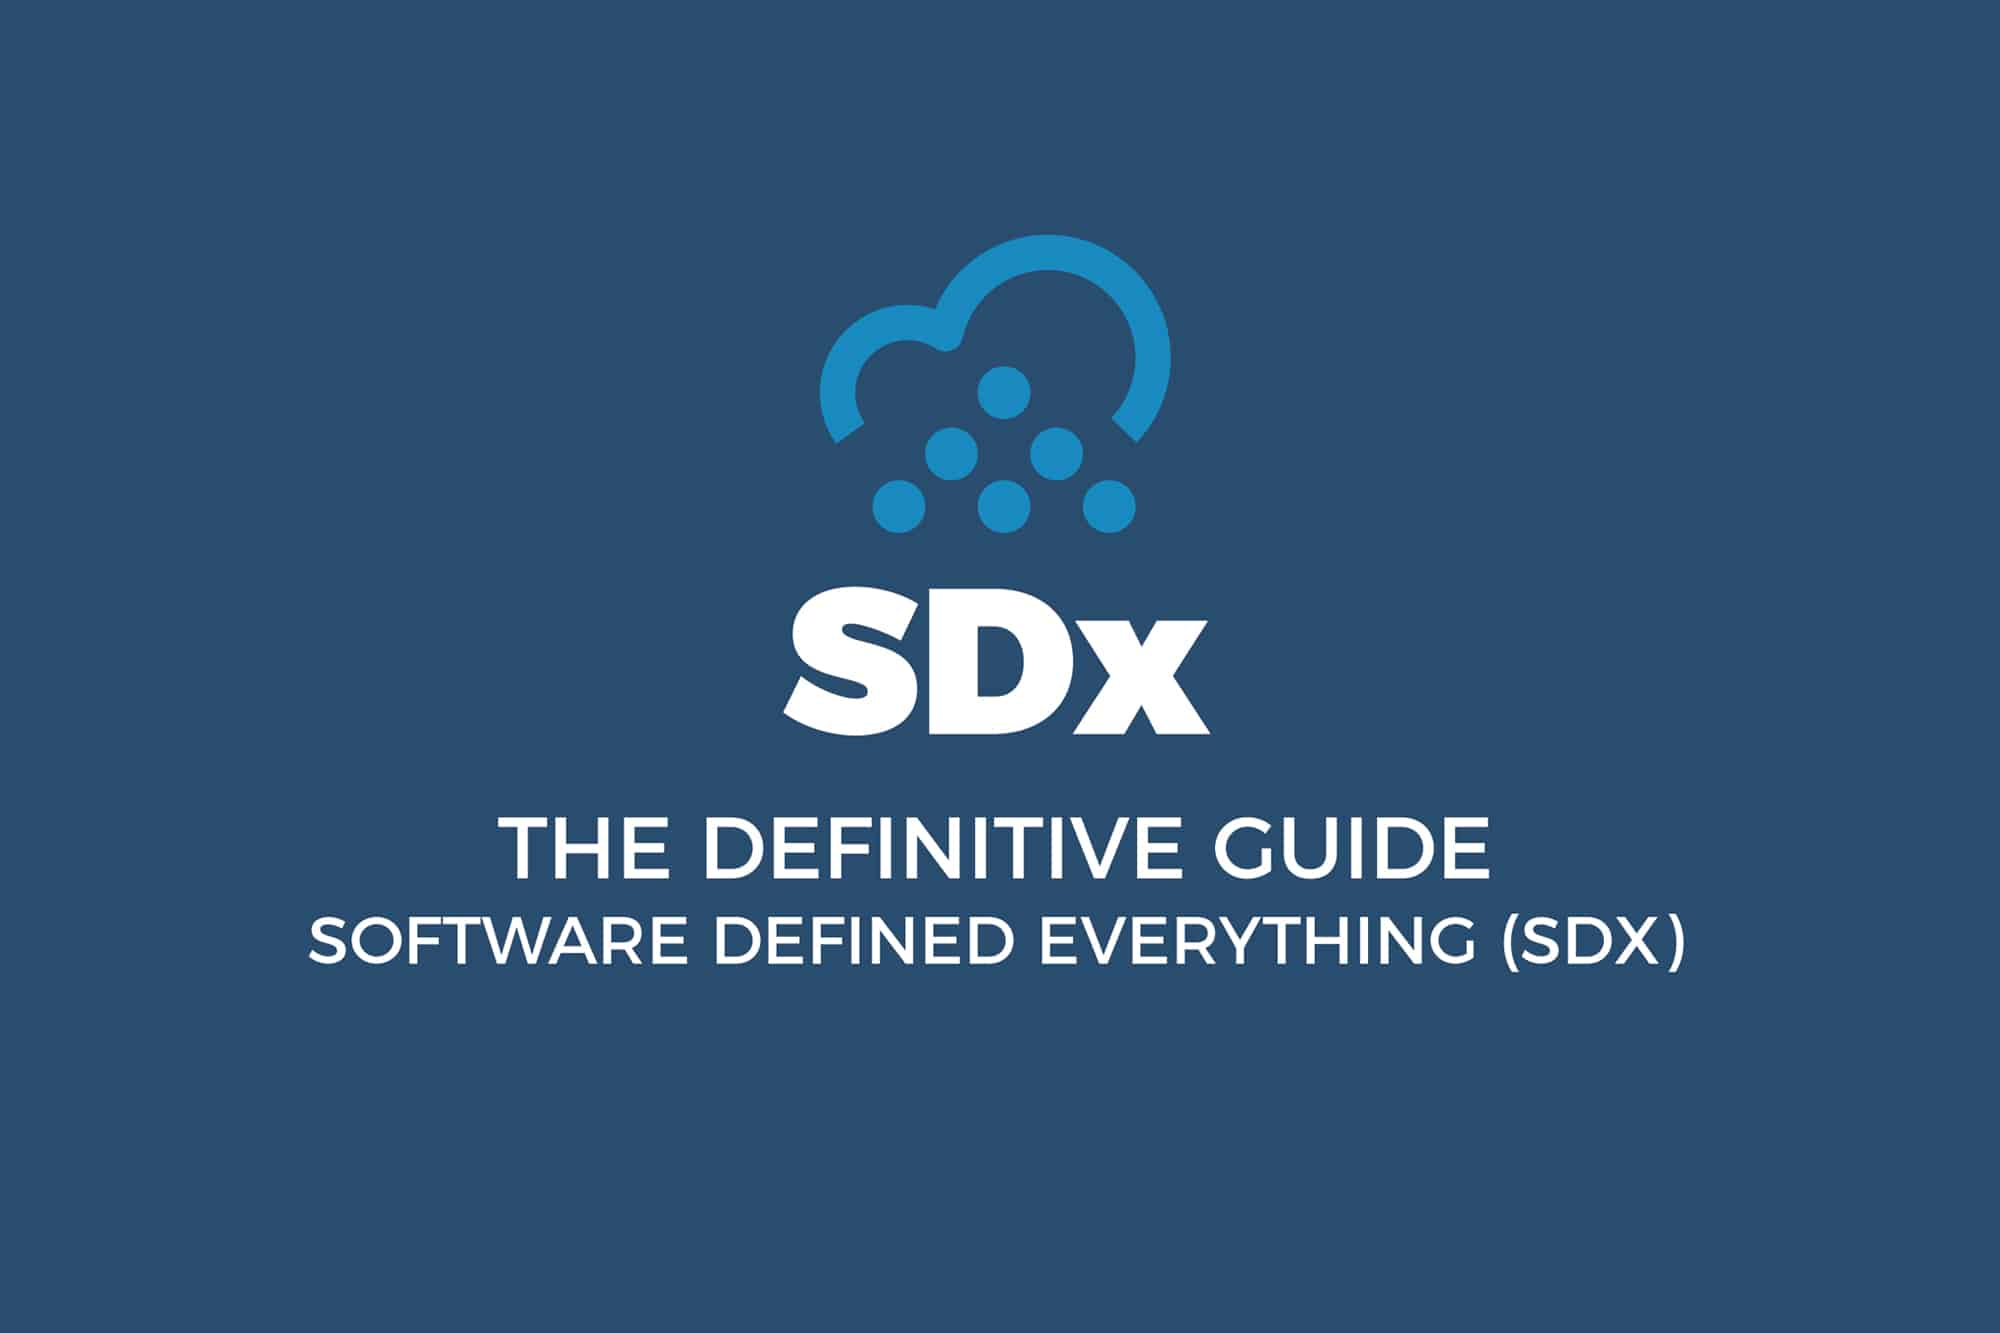 SDx (Software Defined Everything) – The Definitive Guide